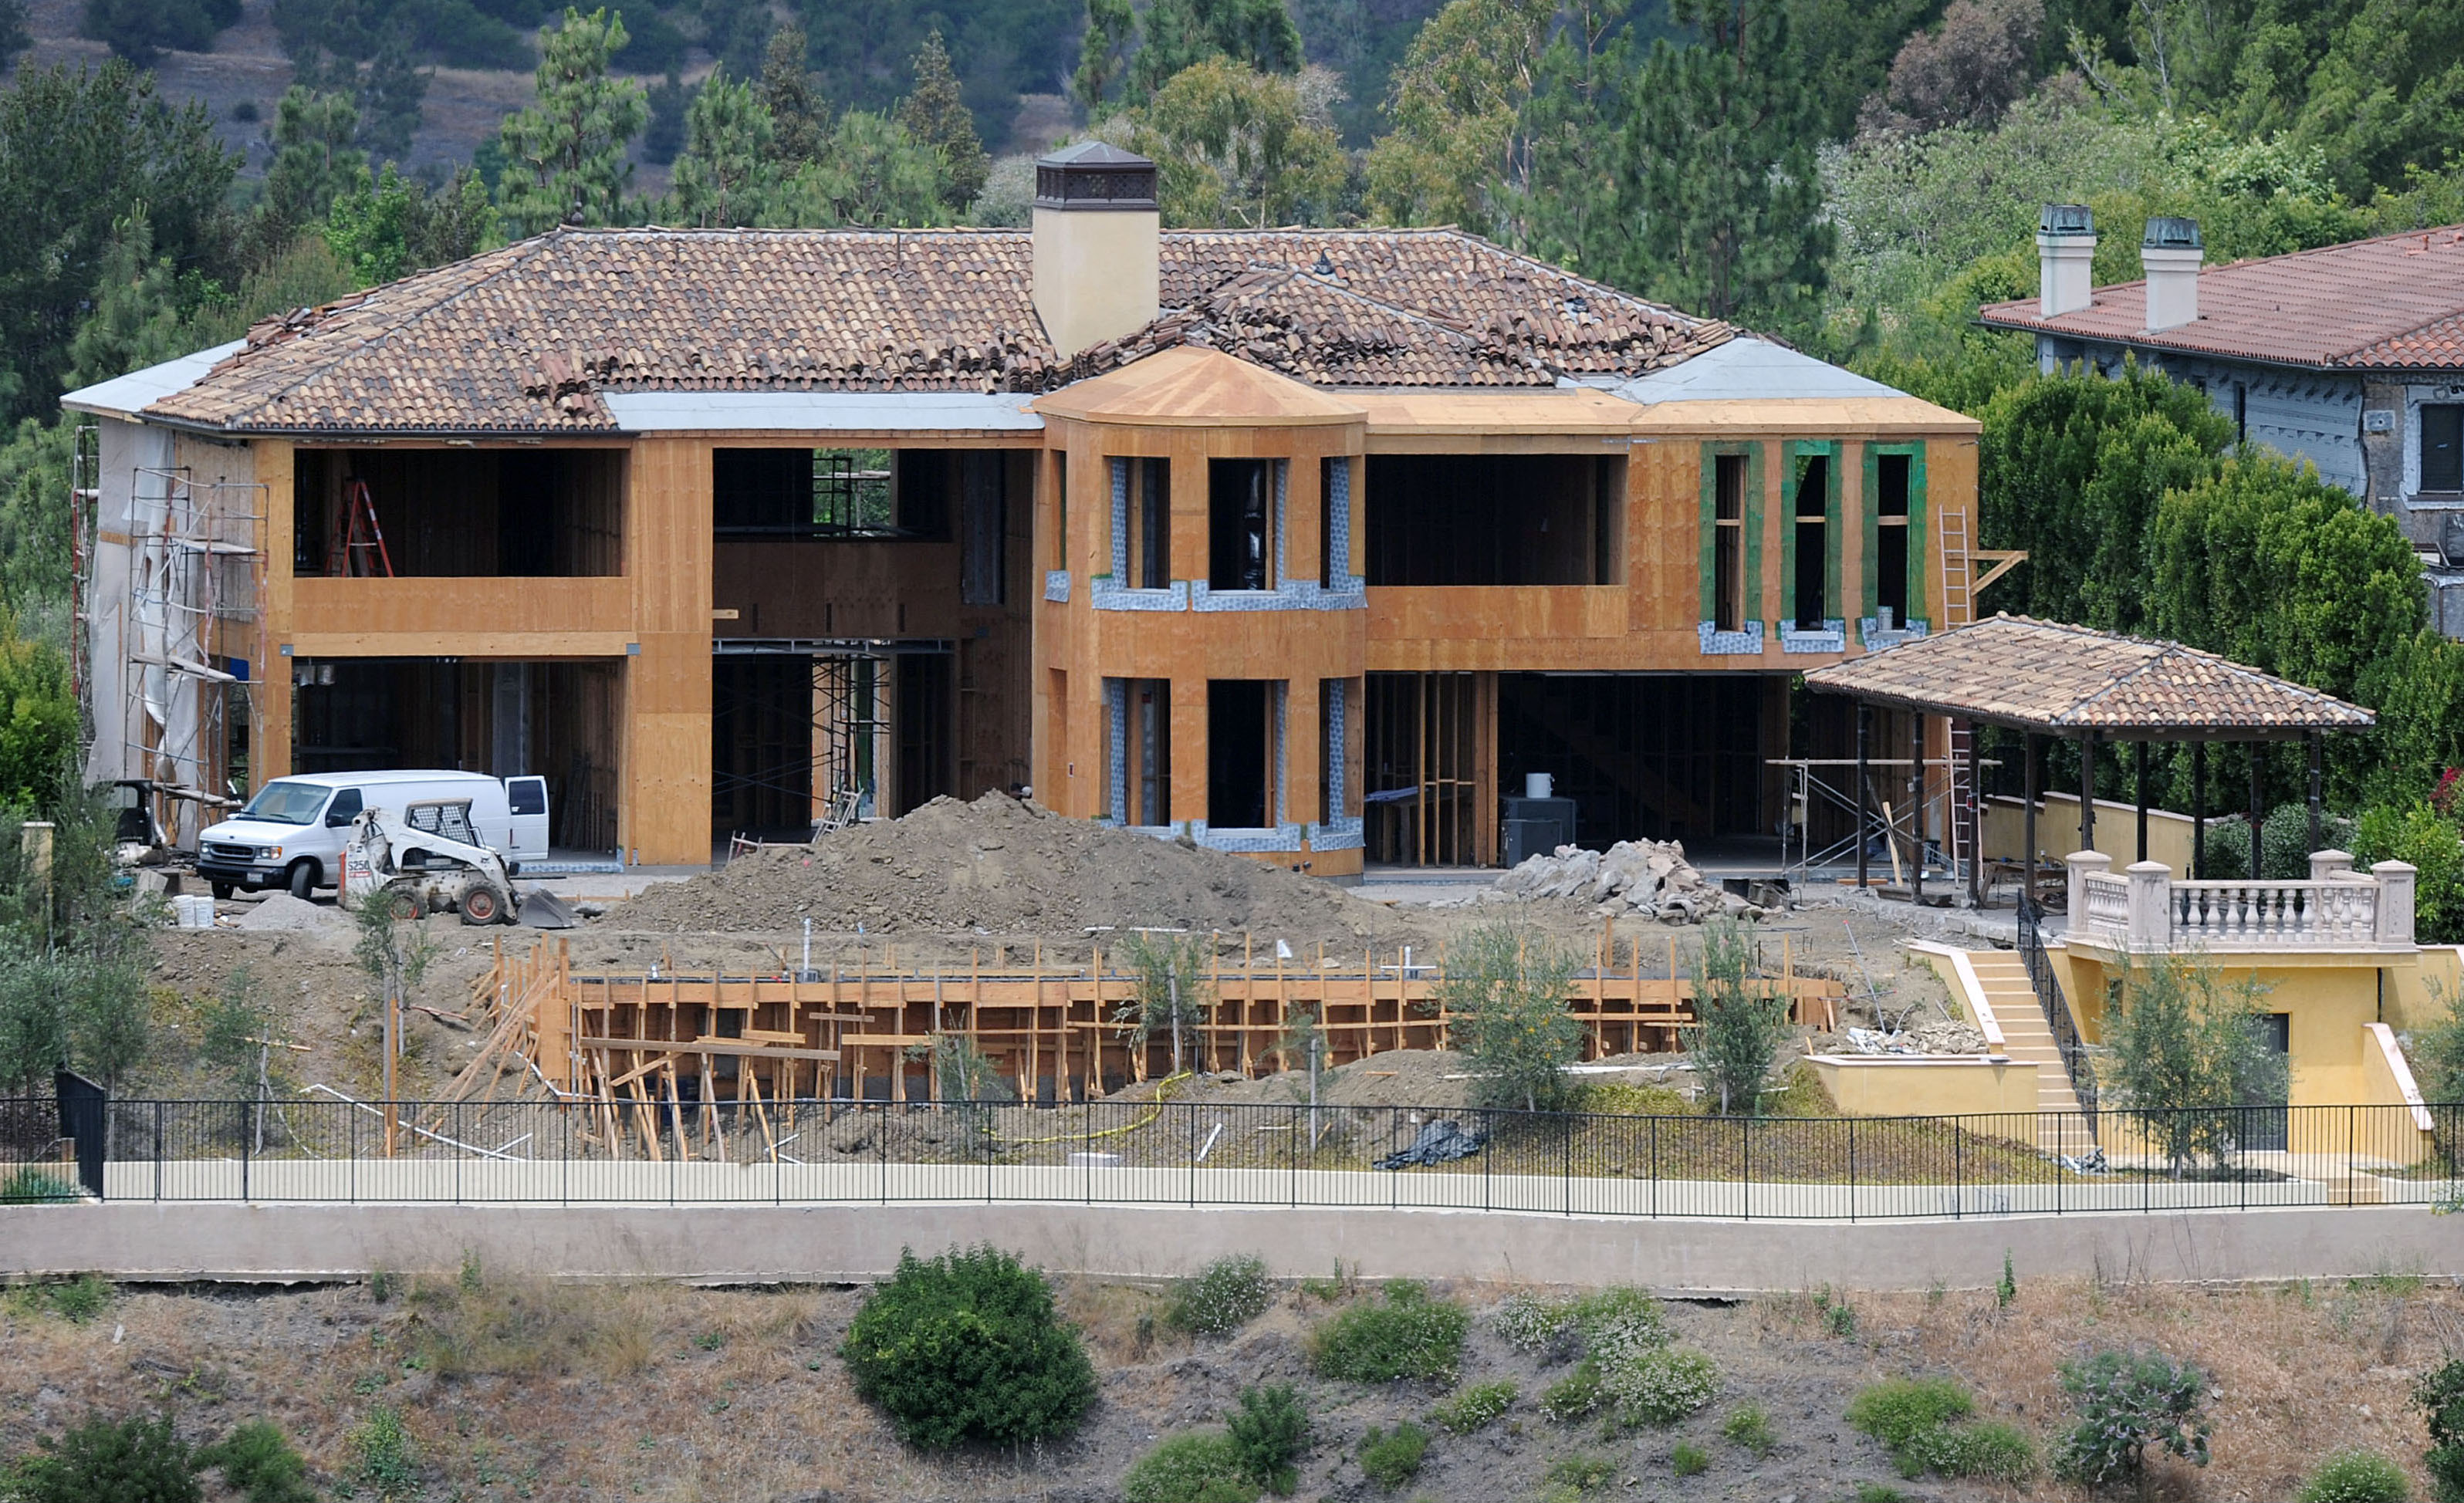 'Kimye' might have just got married but they can't move into their new house as it's STILL being built! LA